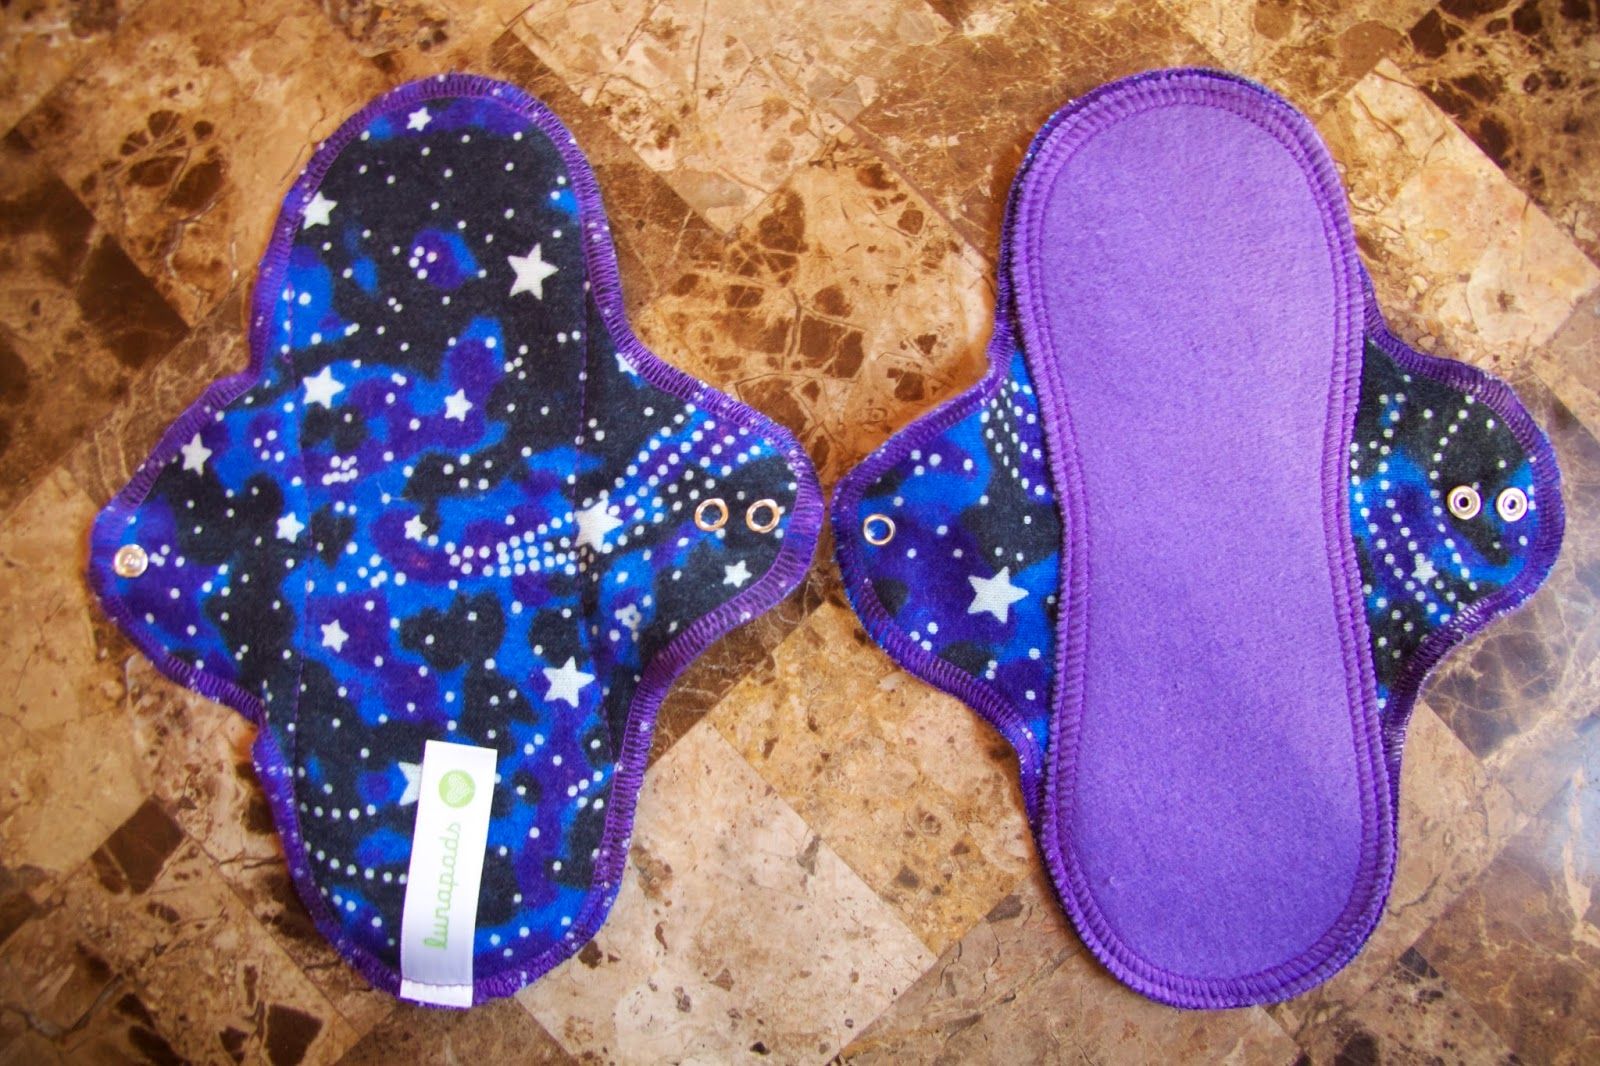 Lunapads Two Mini Pantyliners Review